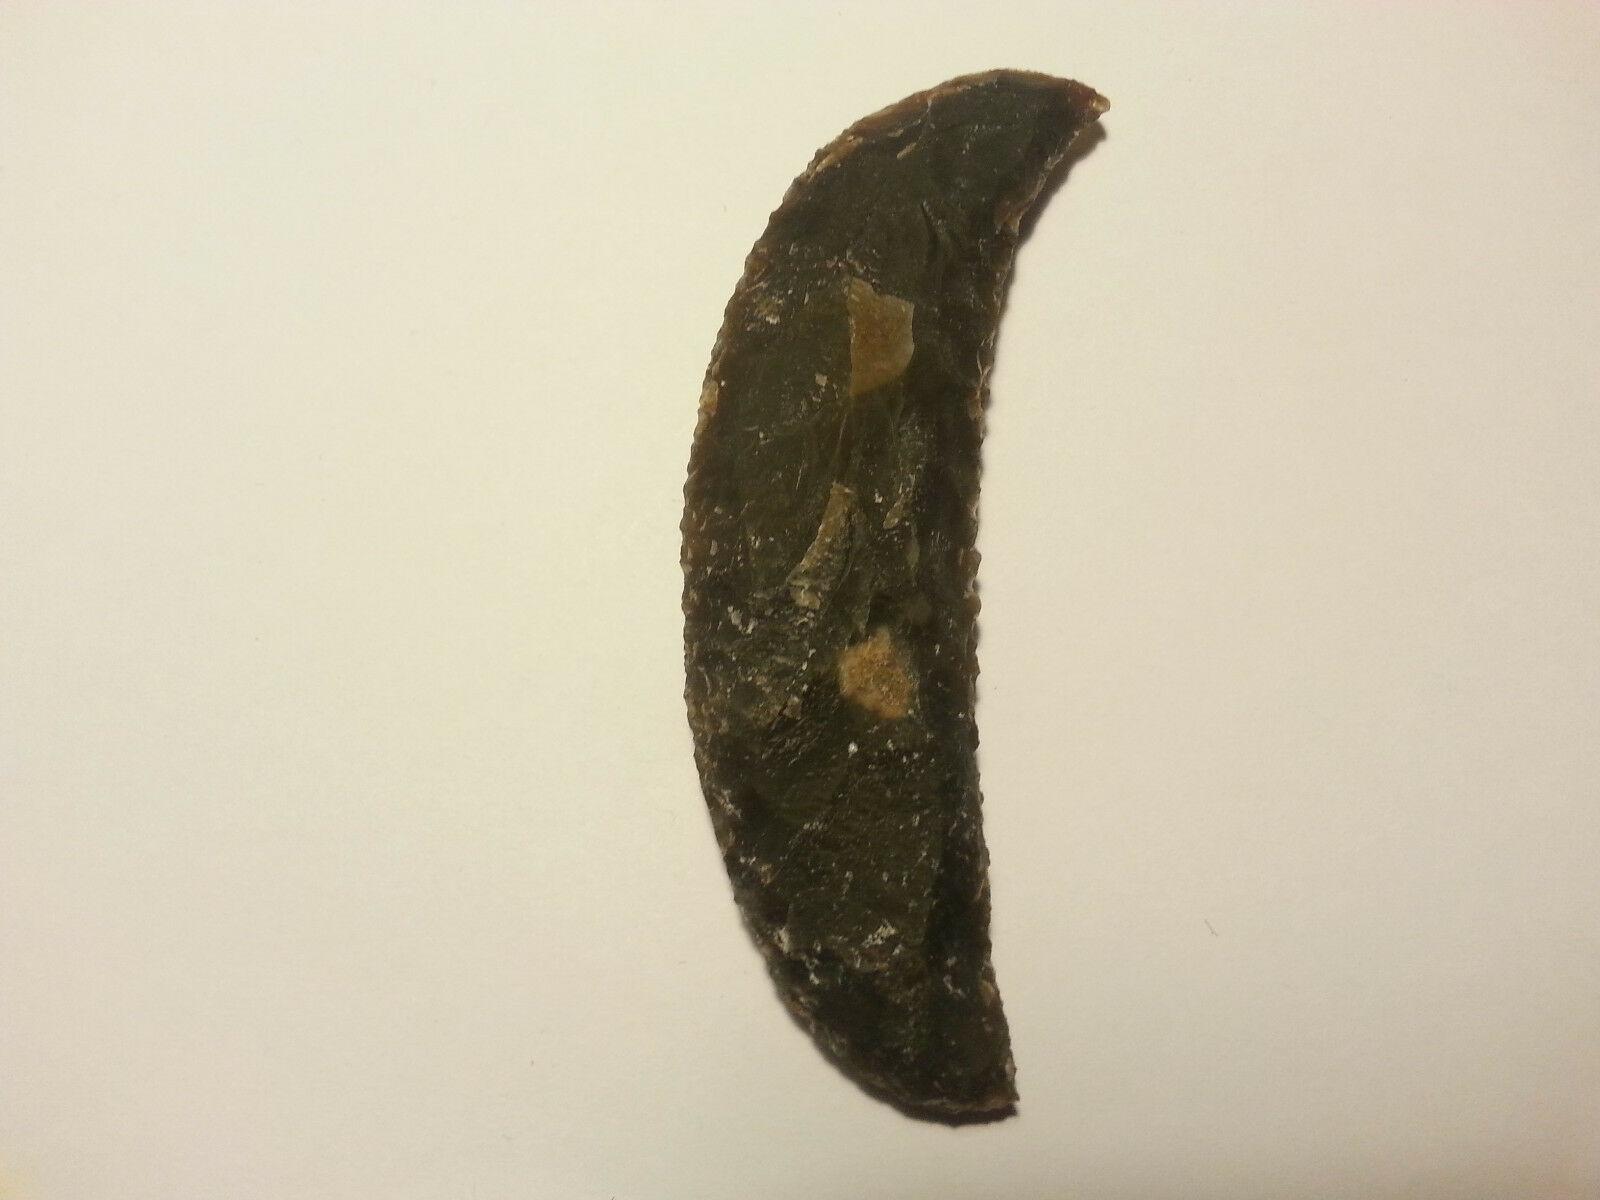 Stone age flint knapping sickle reproduction